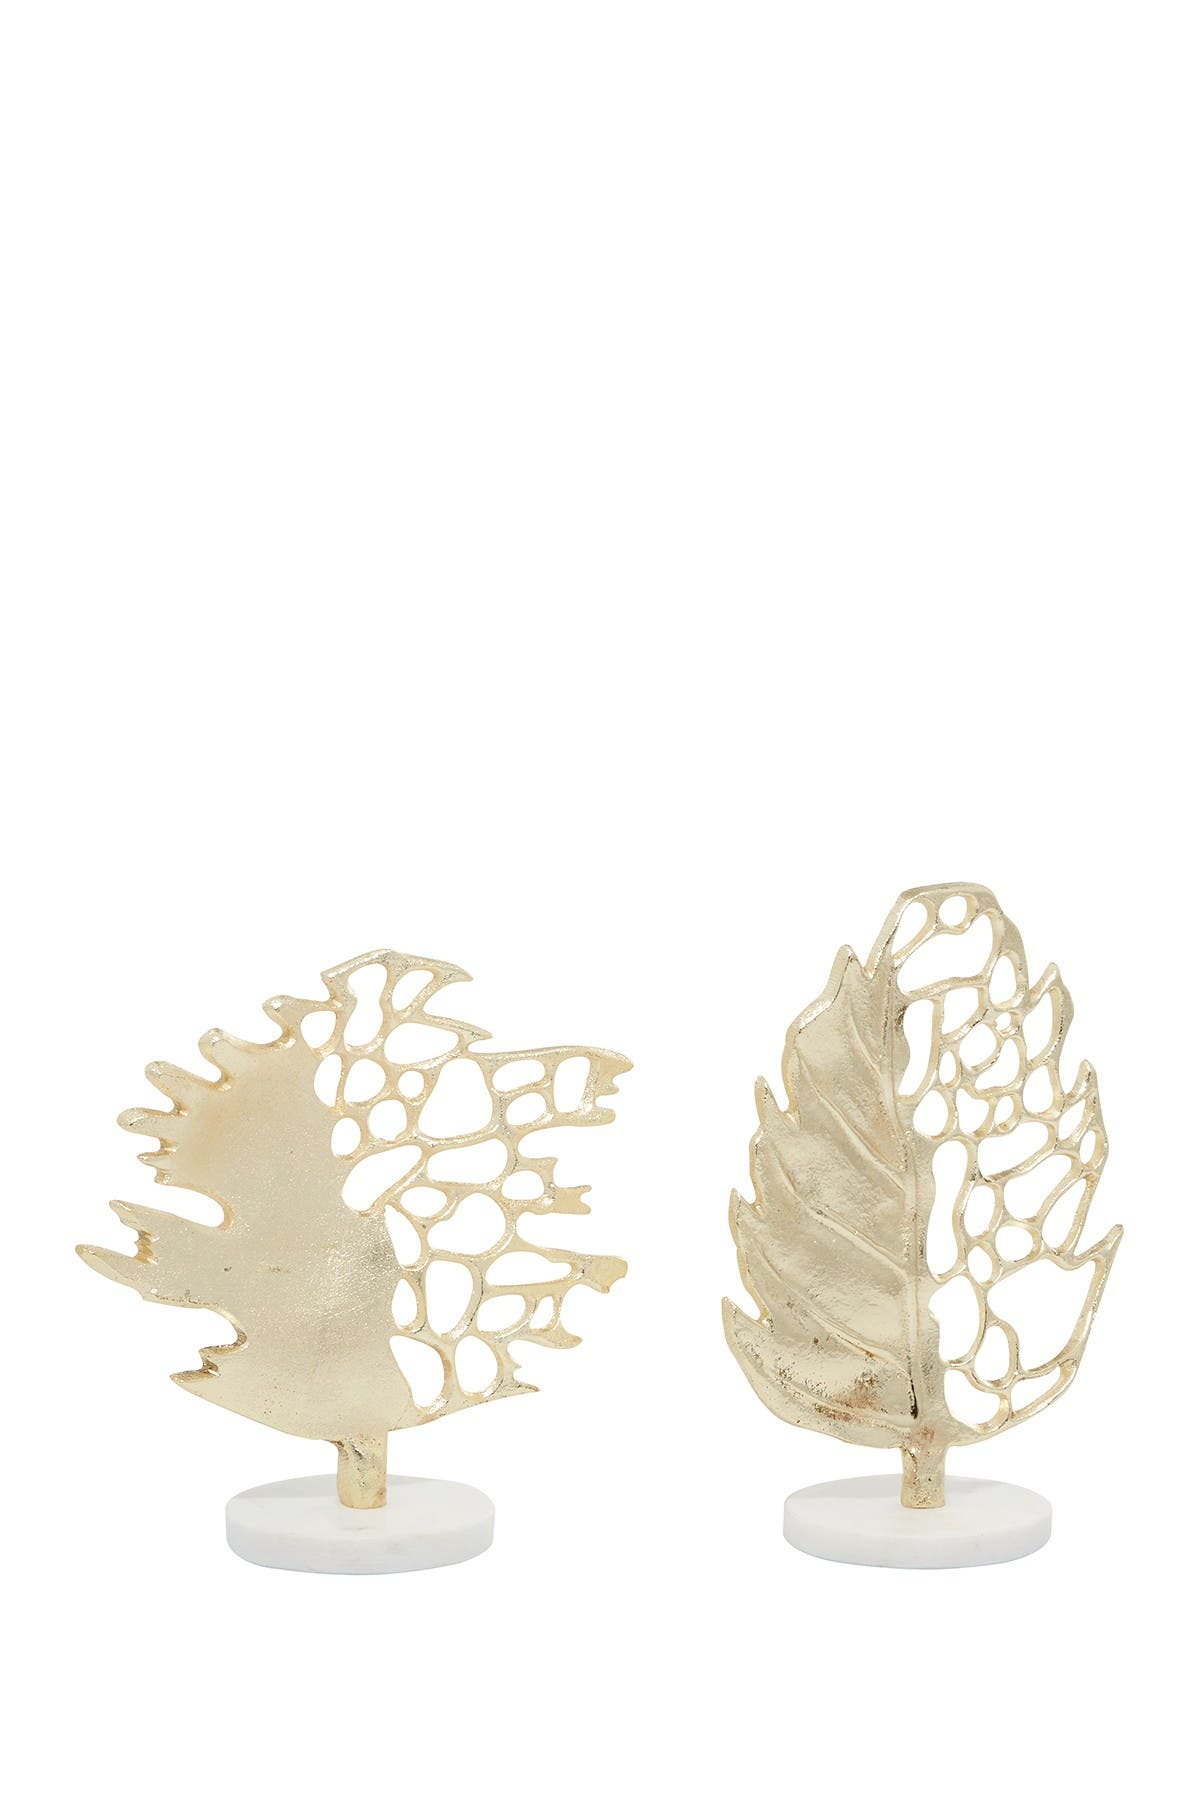 Image of Willow Row Gold Aluminum Glam Leaf Sculpture - Set of 2